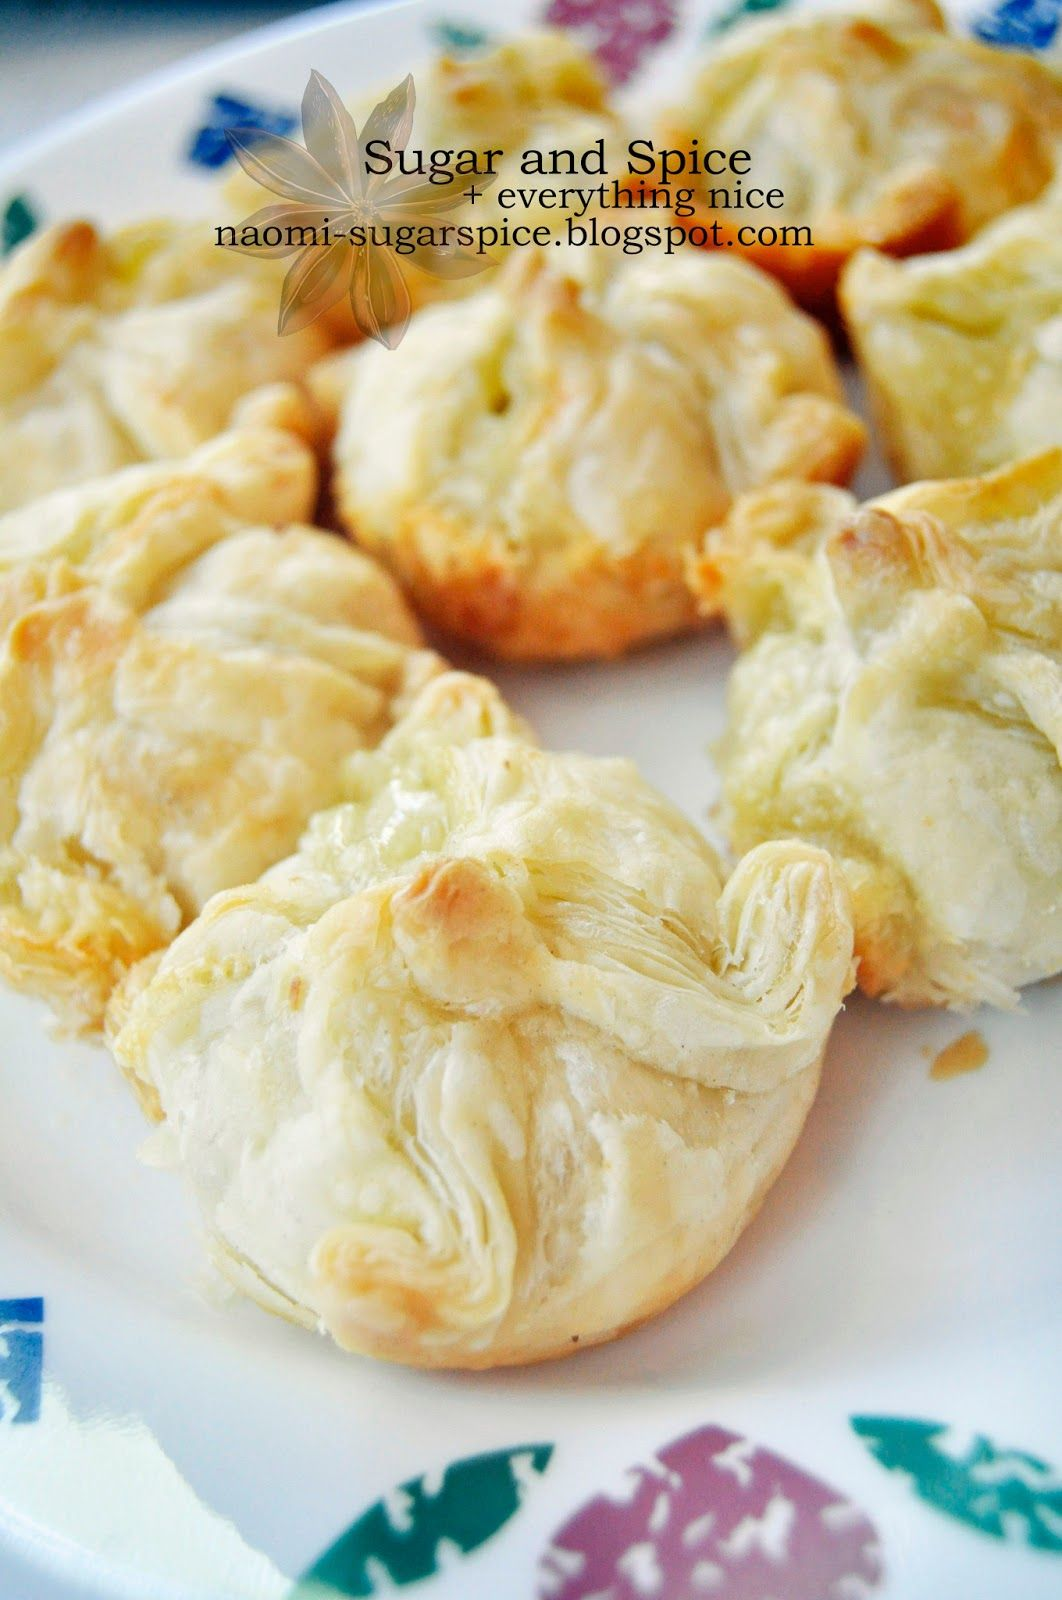 Mini Baked Brie [Recipe & Tutorial] - Easy, quick appetizer for parties!